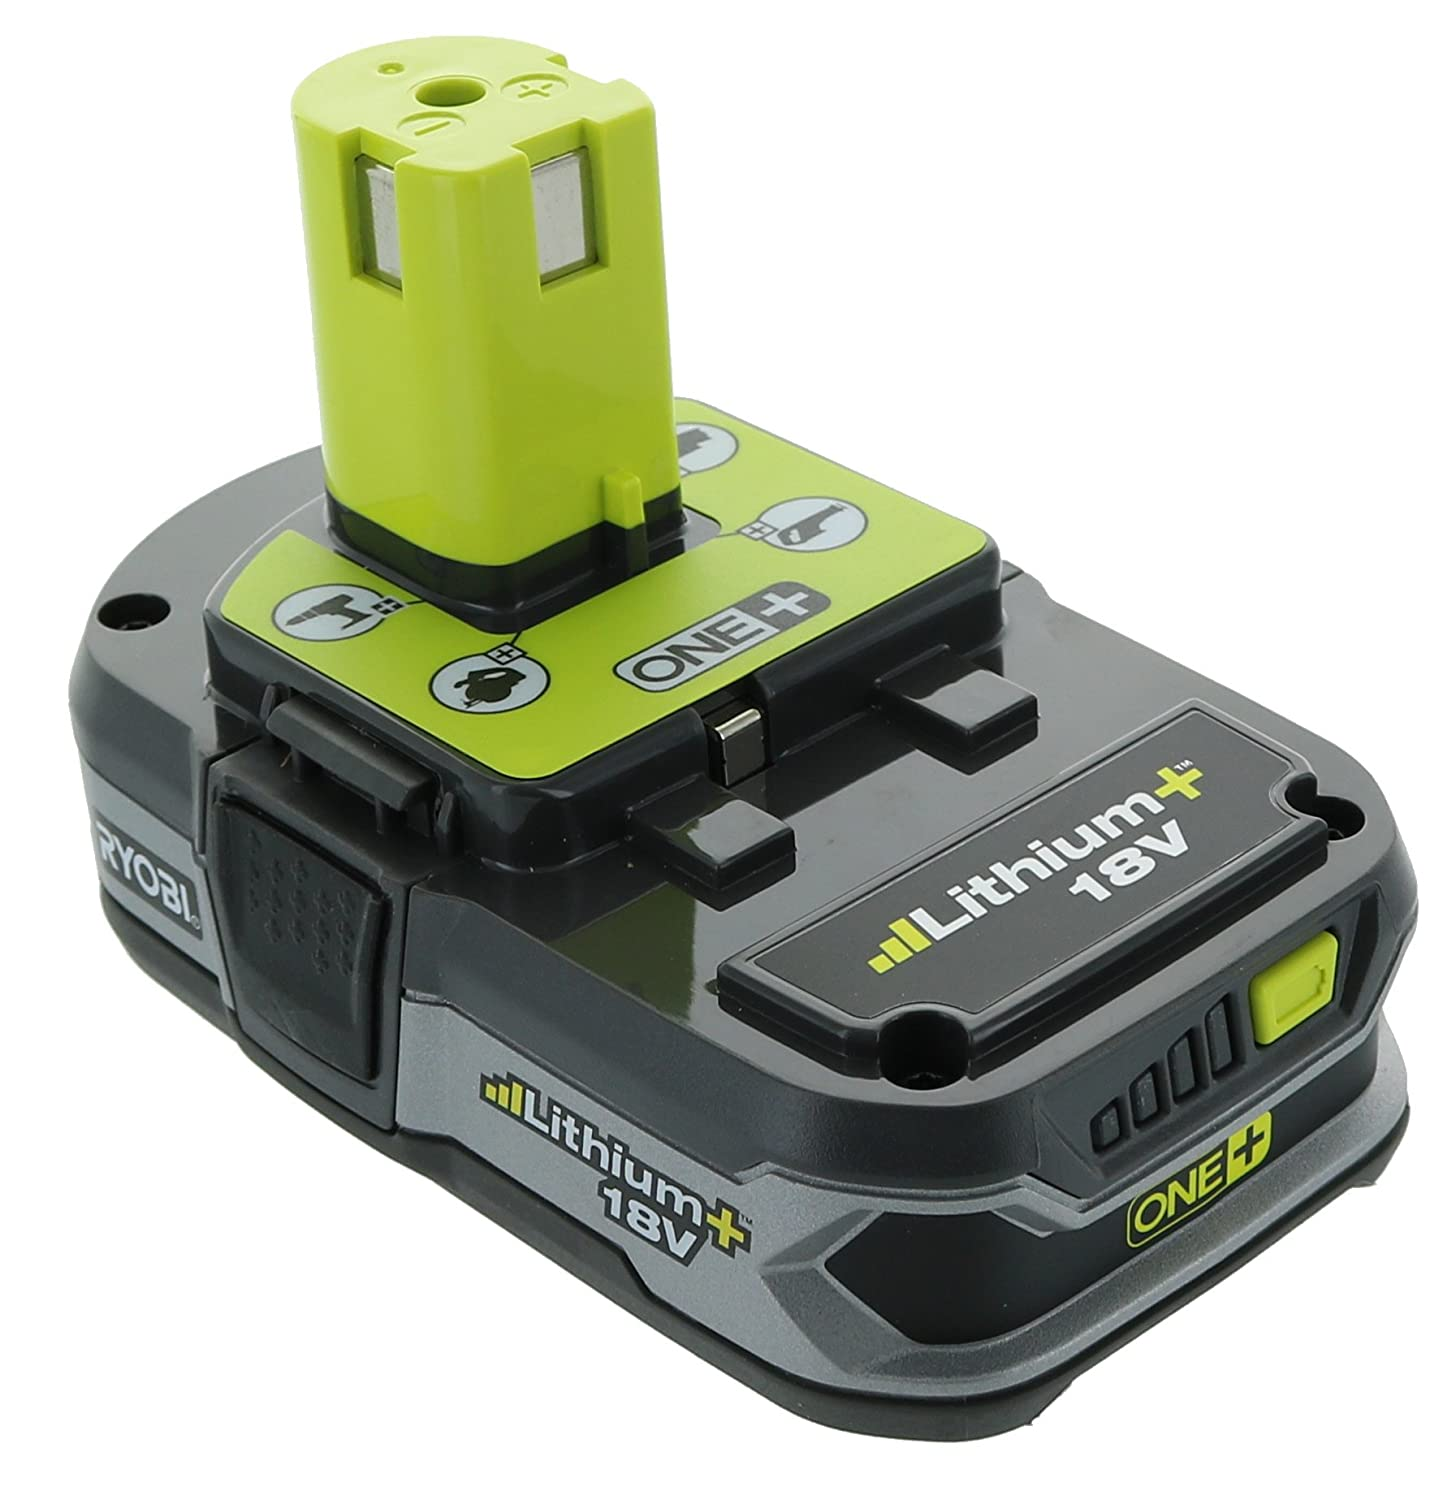 Ryobi P107 One+ 18 Volt Compact Lithium Ion 1.5 Ah Battery (Single Battery)